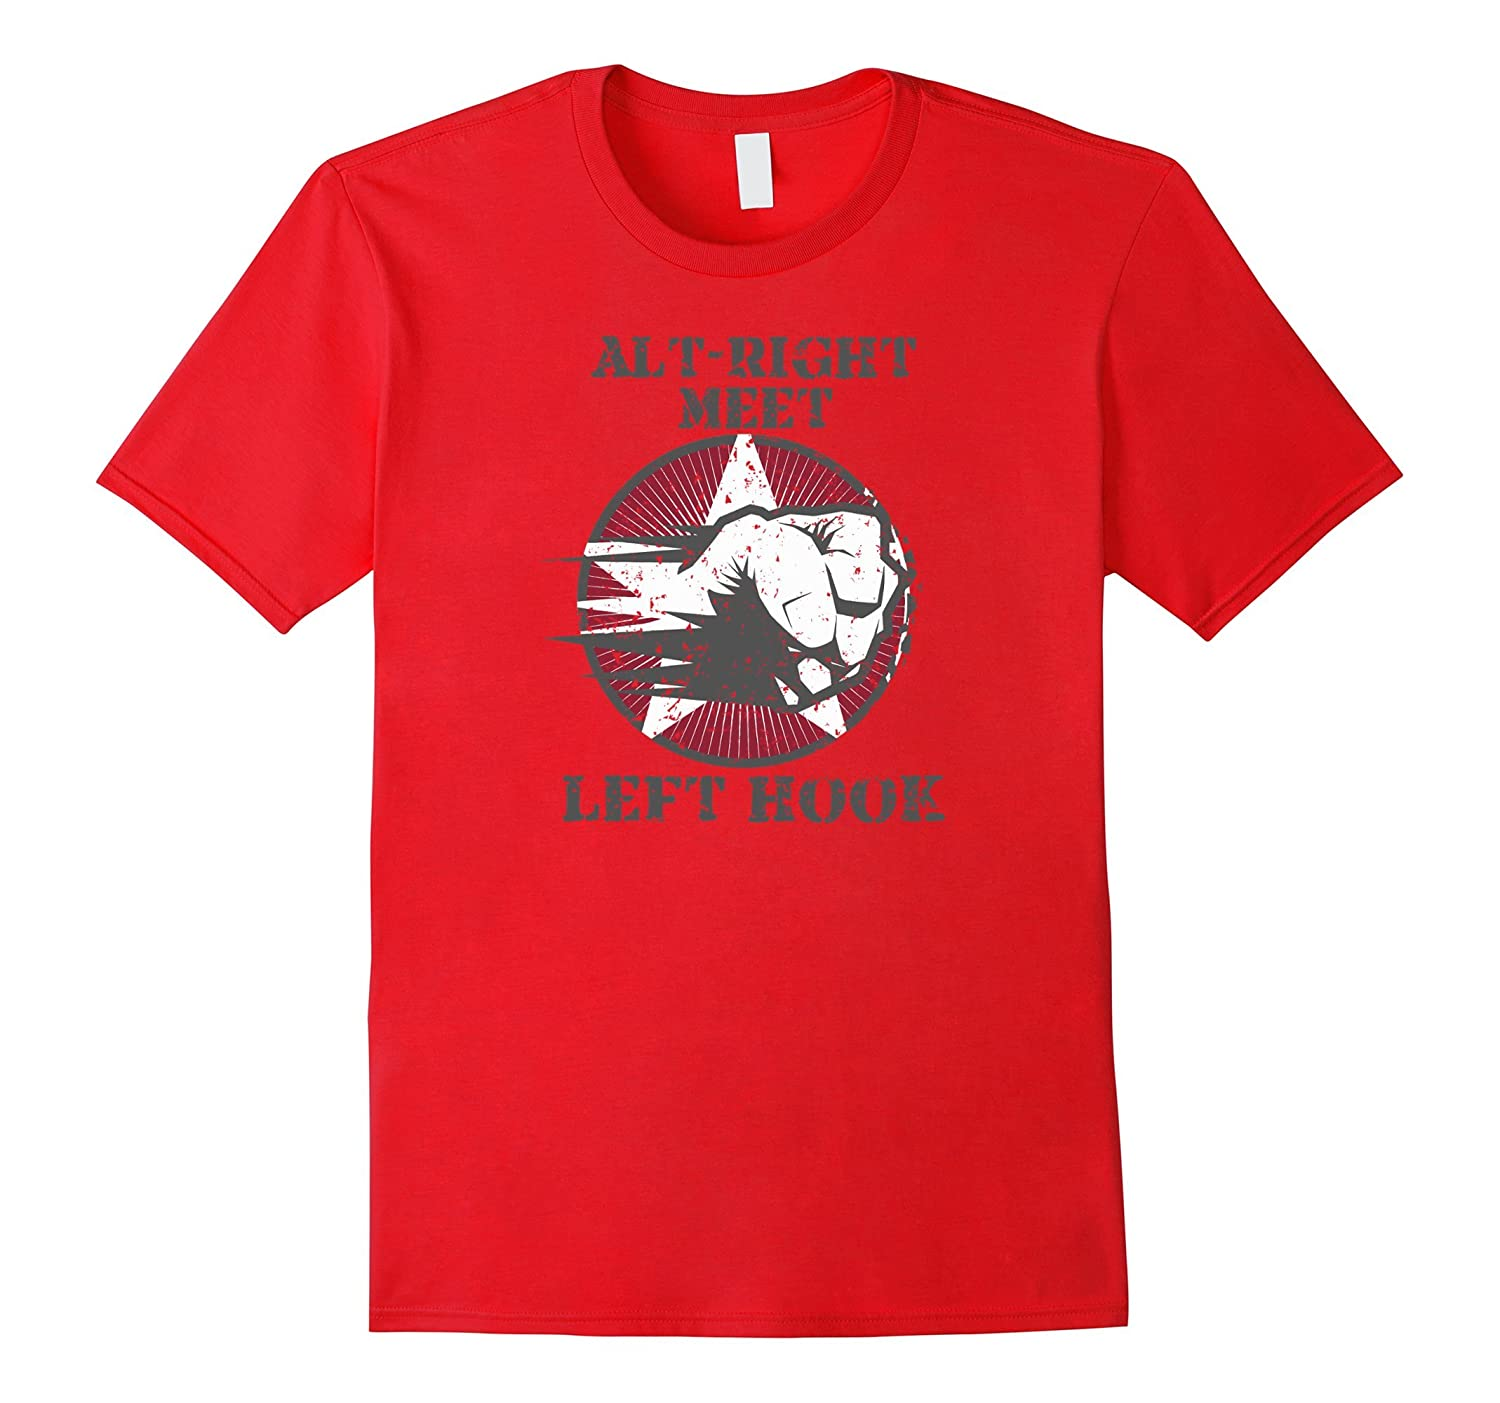 Alt-Right Meet Left Hook Anti Nazi Graphic Tee Humor-RT